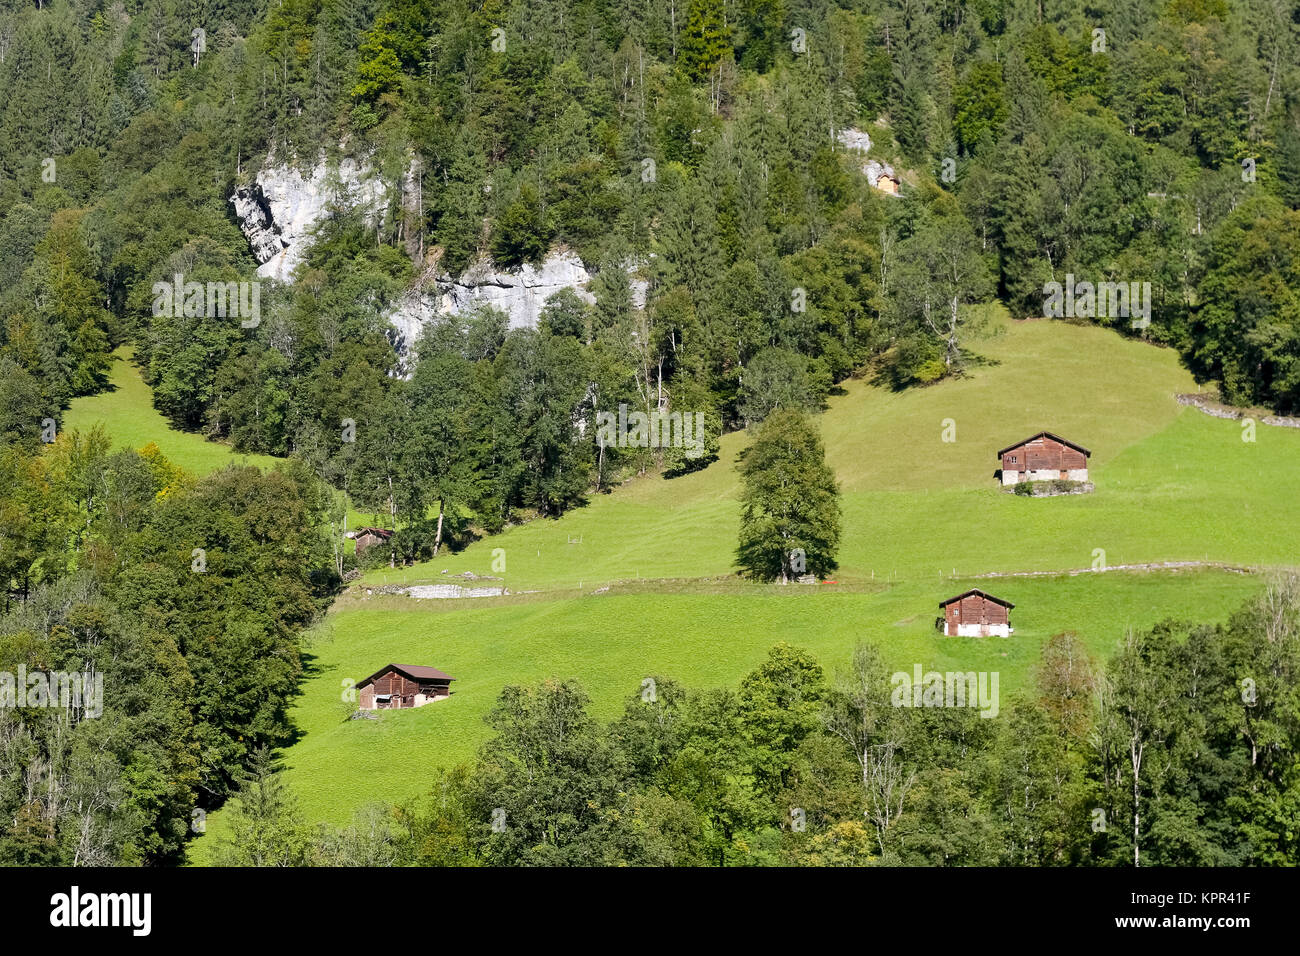 On the meadow, among the forests on a slight slope of the hill, there are huts that can be visible from Lauterbrunnen - Stock Image